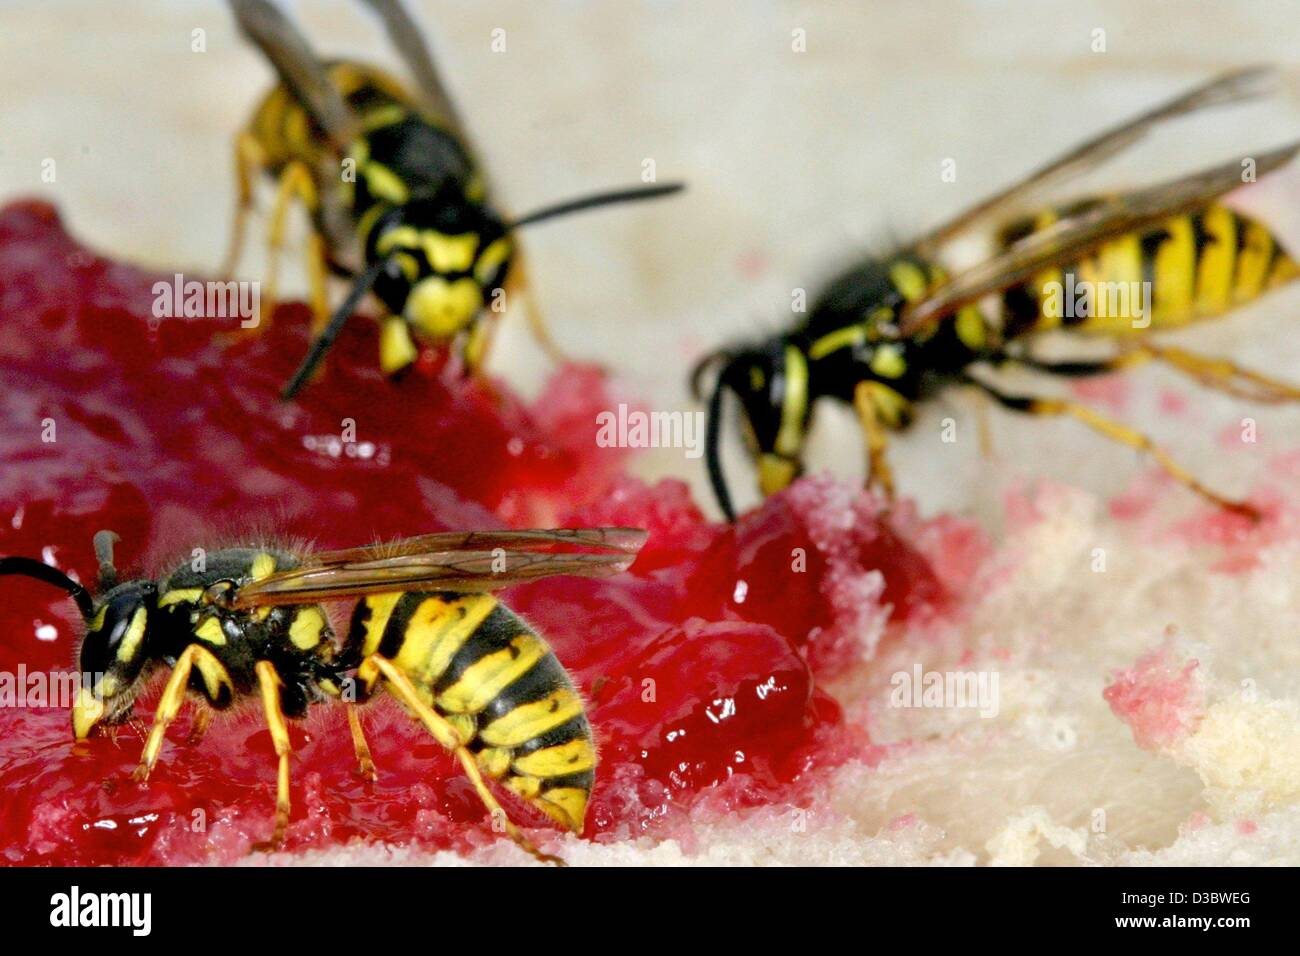 (dpa) - A particular nuisance at the end of the summer for many: Wasps indulge their passion for sugary sweets on - Stock Image